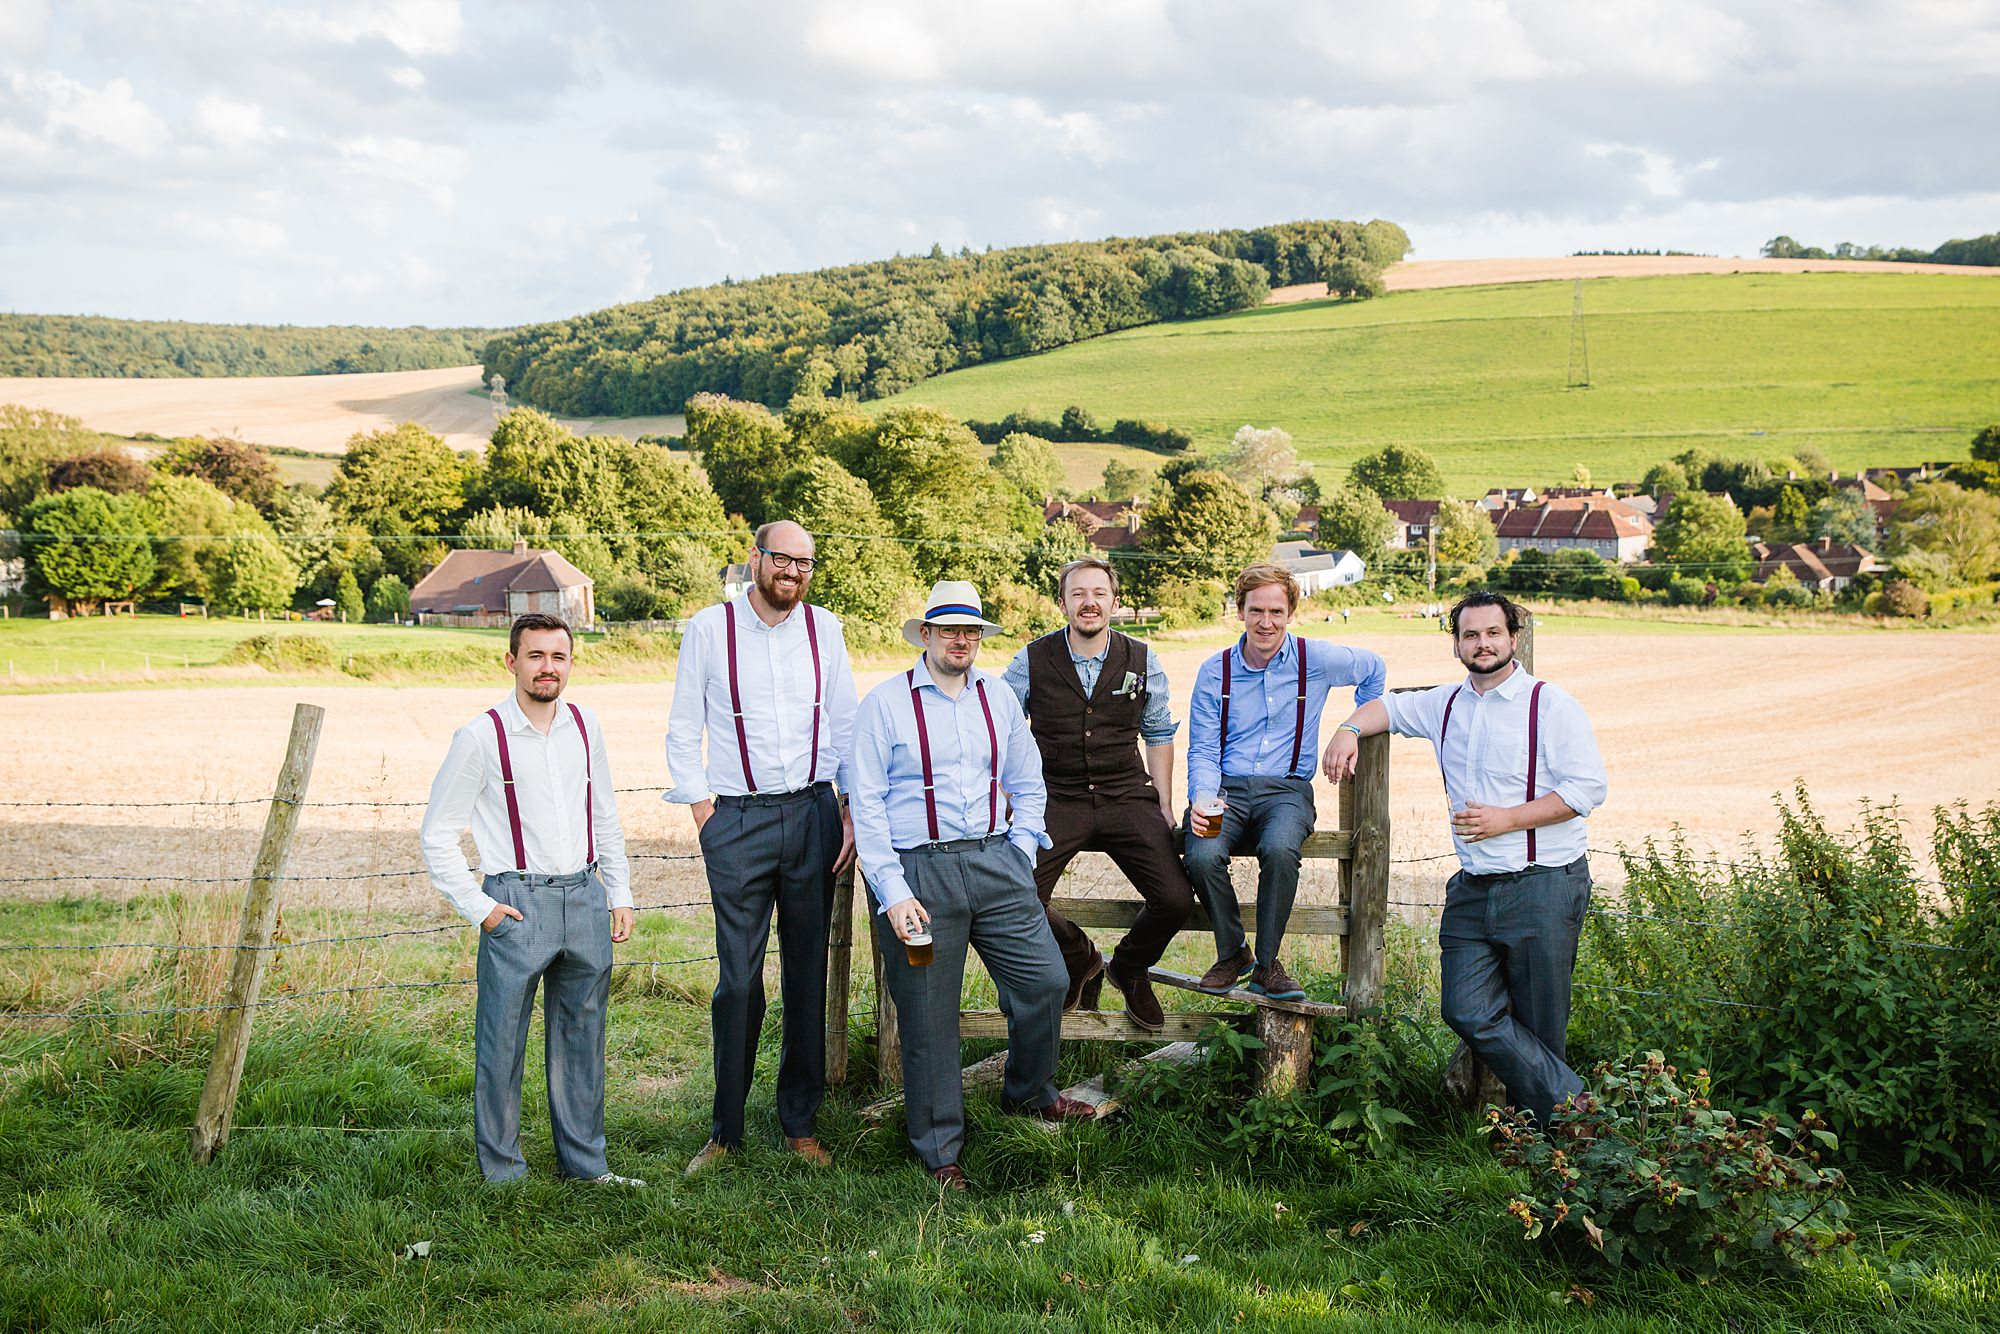 Fun village hall wedding laid back portrait of groom and groomsmen